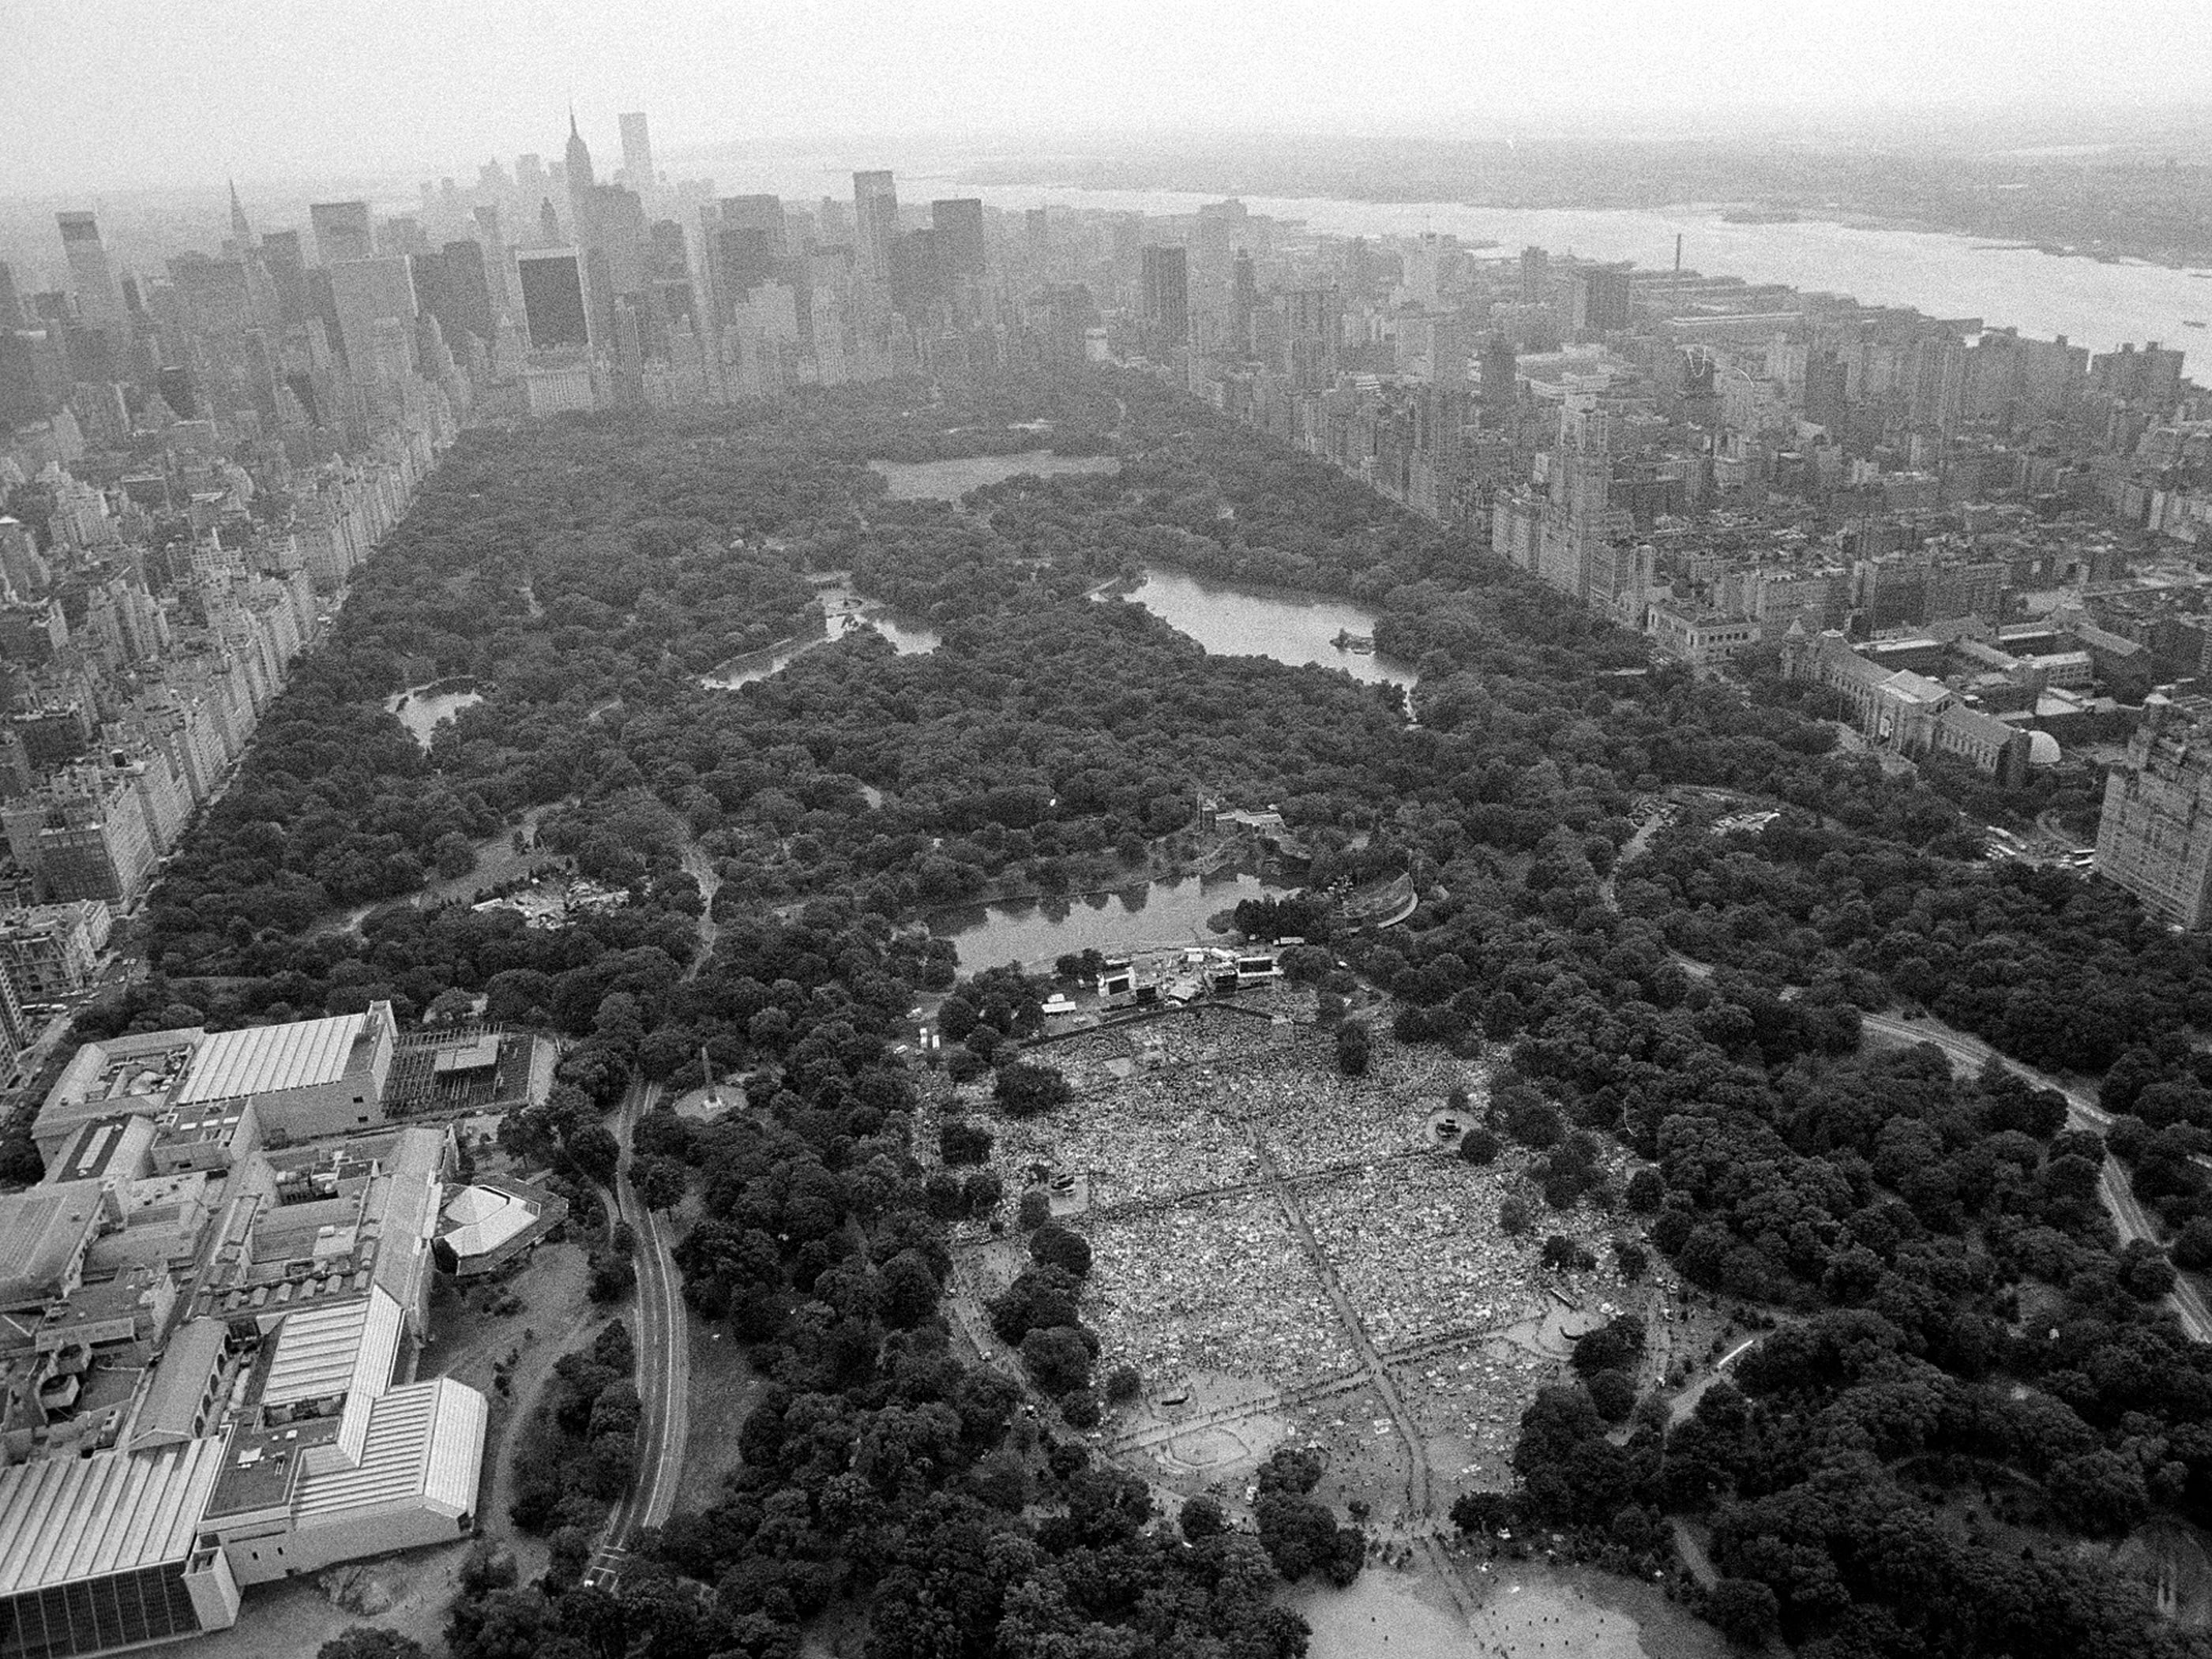 About 350,000 people fill New York's Central Park on July 21, 1983 for a free concert by Diana Ross. A heavy rainstorm ended the performance after 45 minutes.